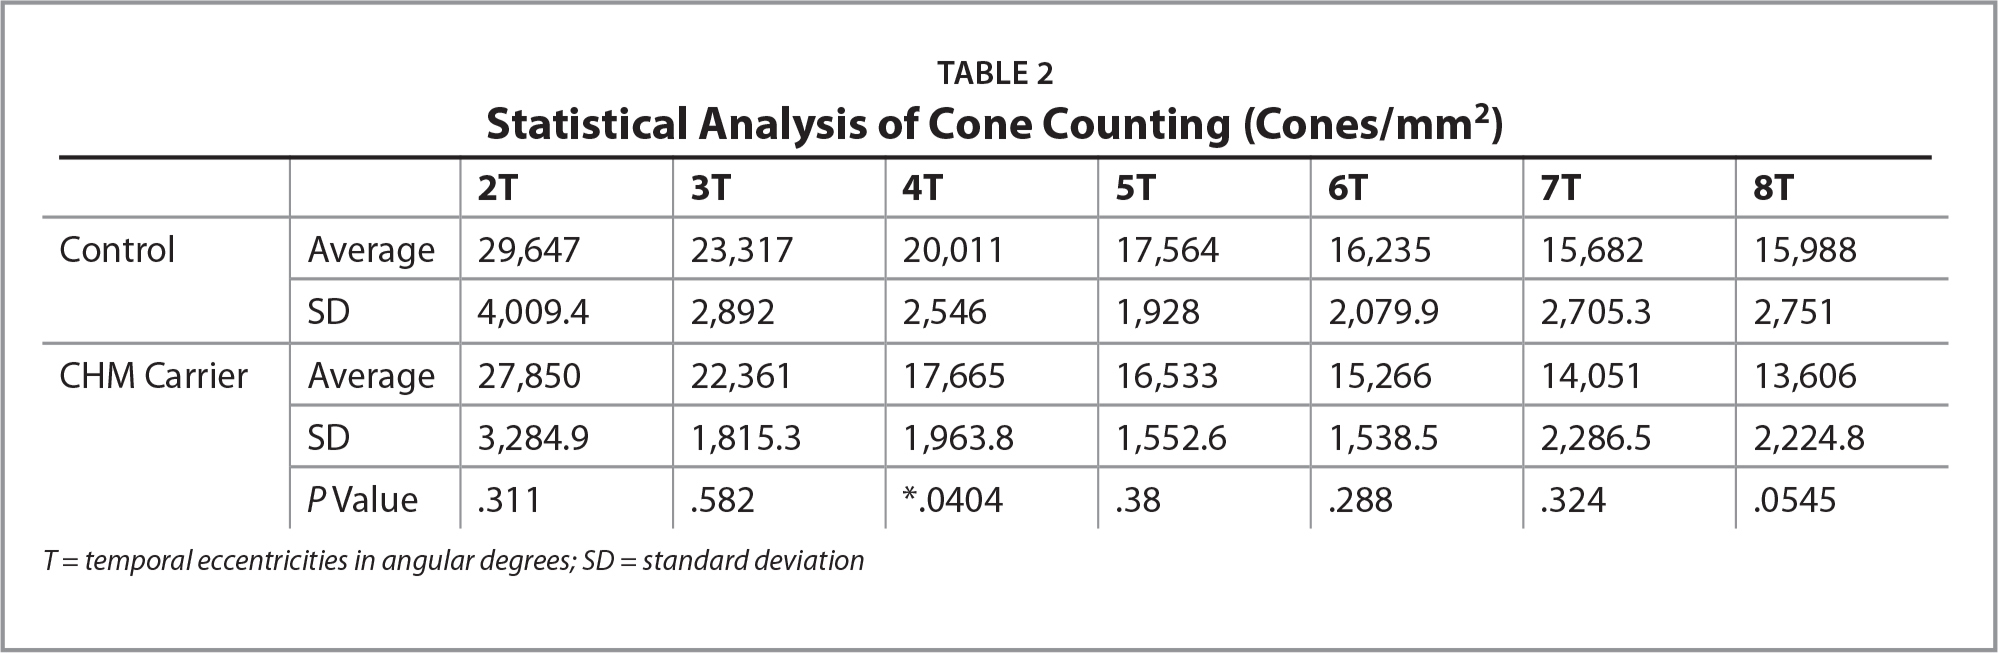 Statistical Analysis of Cone Counting (Cones/mm2)